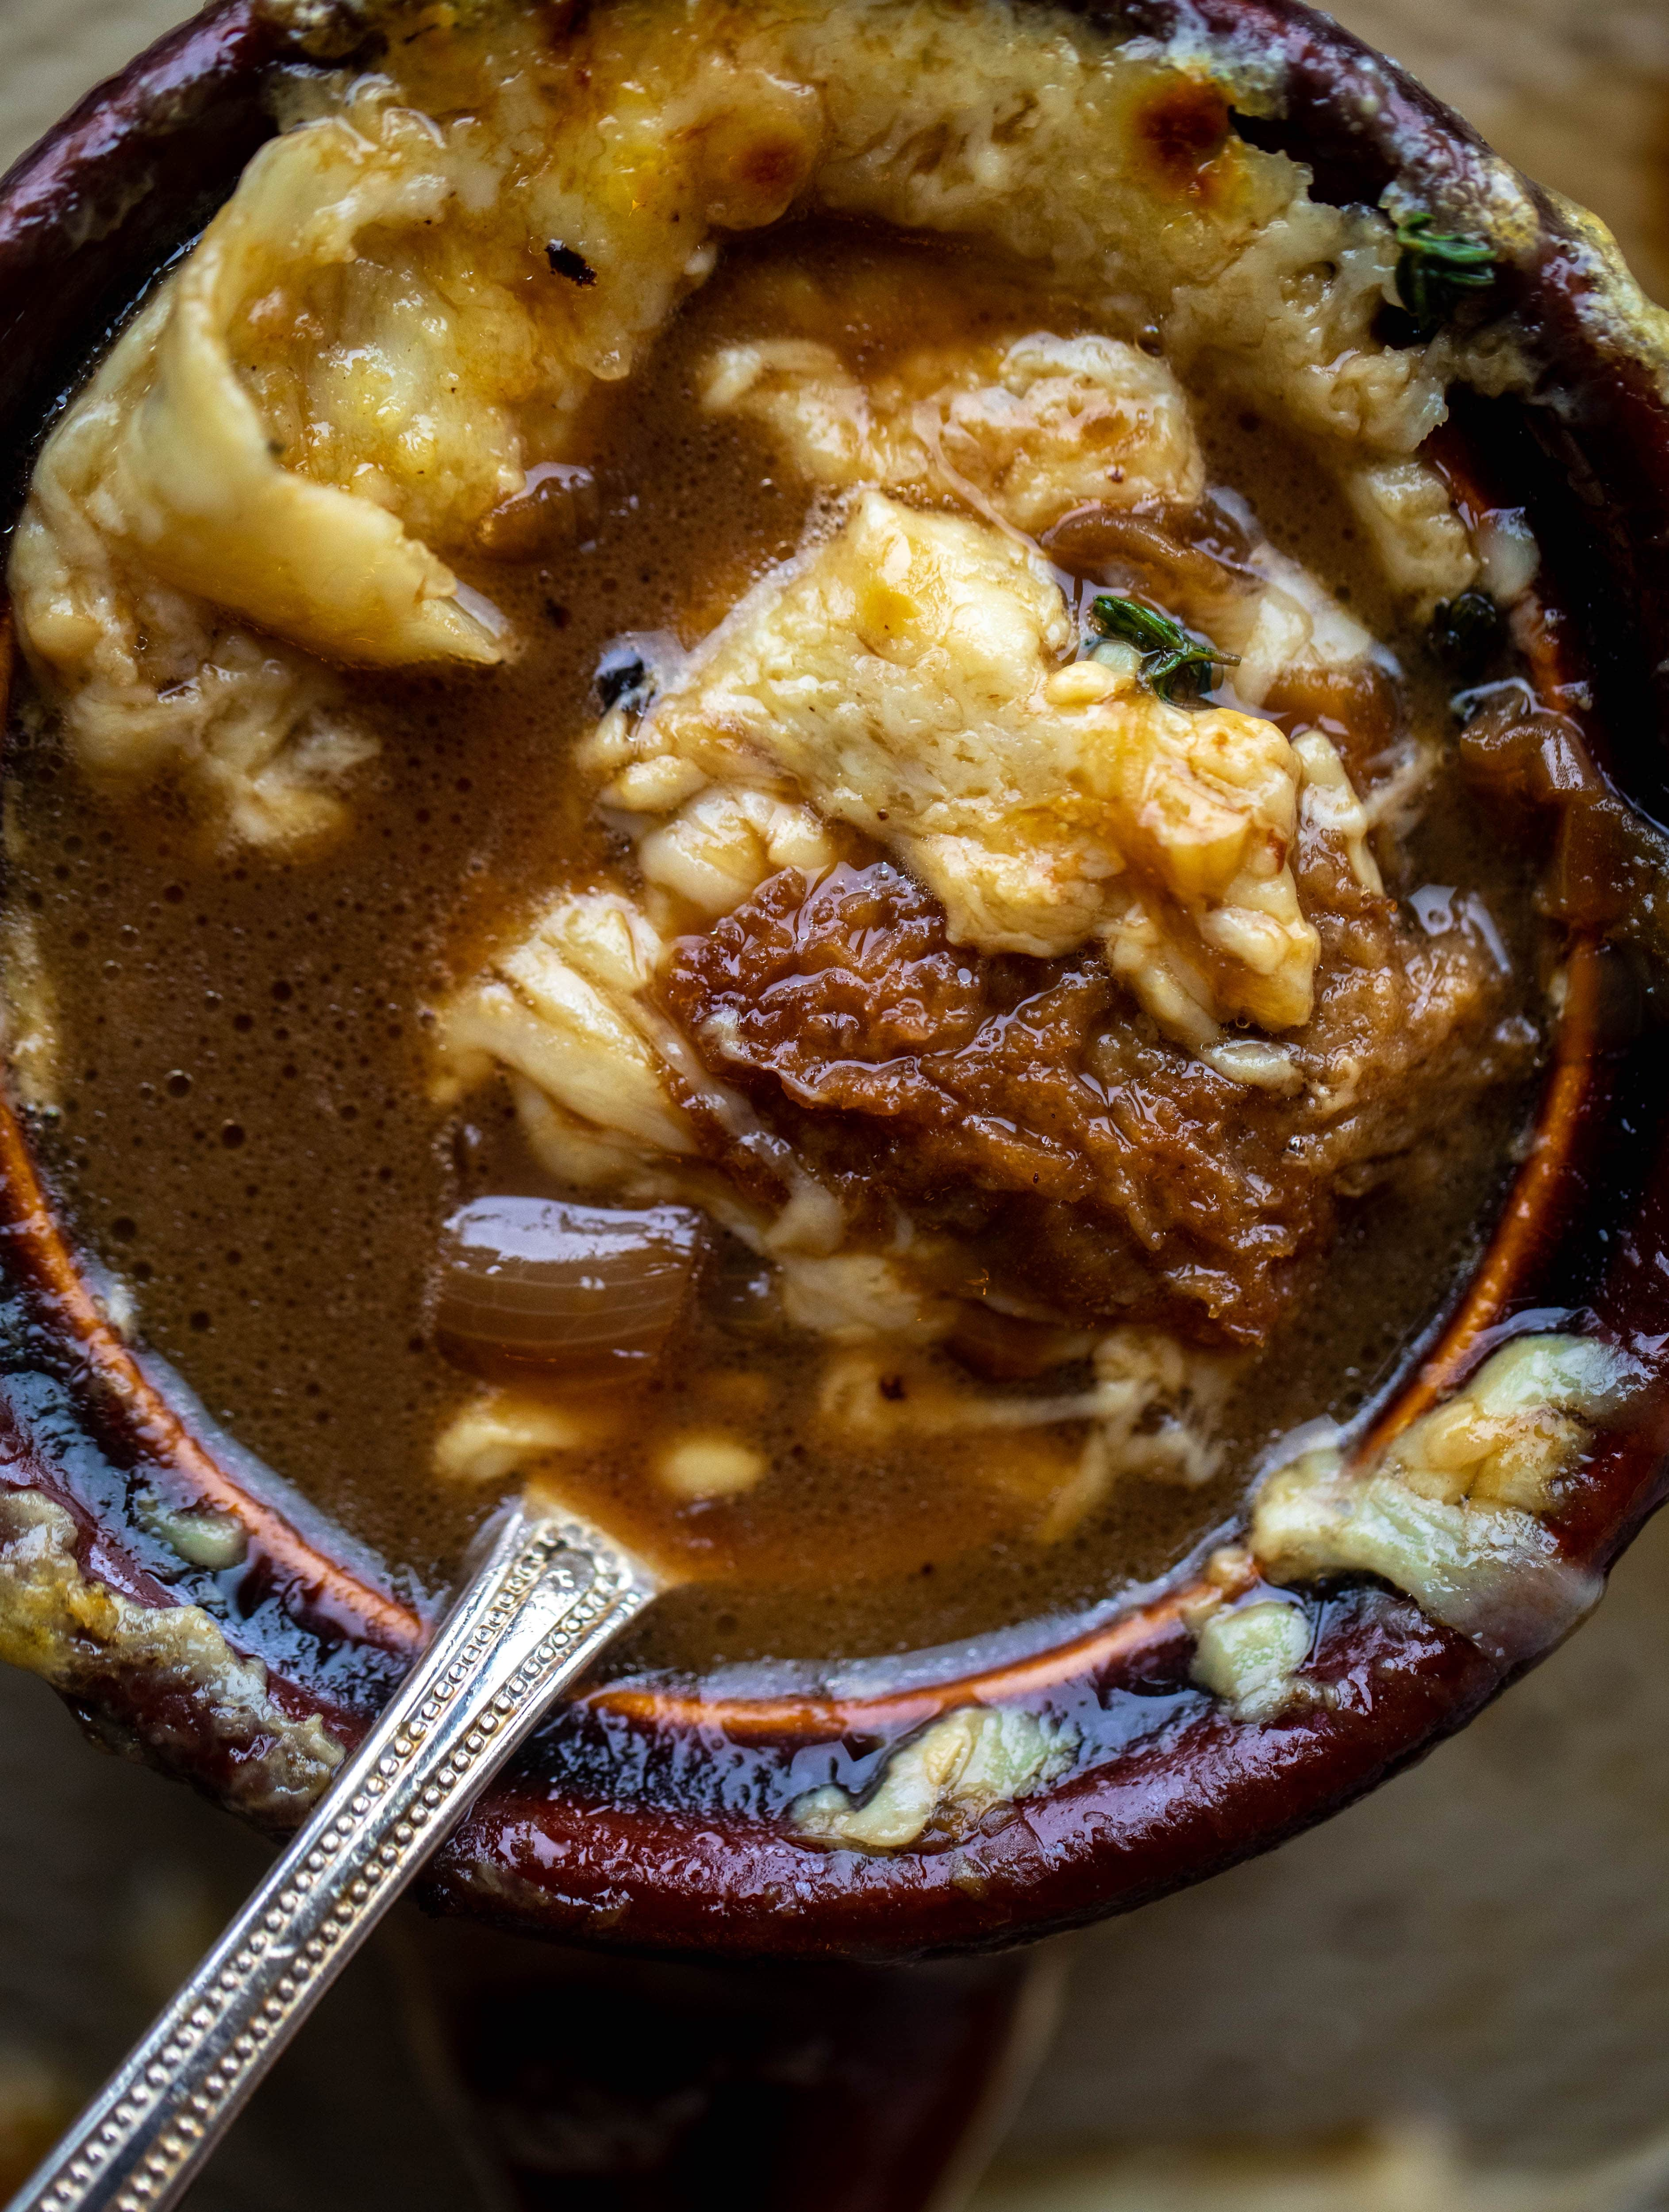 My favorite french onion soup starts with bourbon caramelized onions! Adorable heart croutons and tons of gruyere take it over the top.